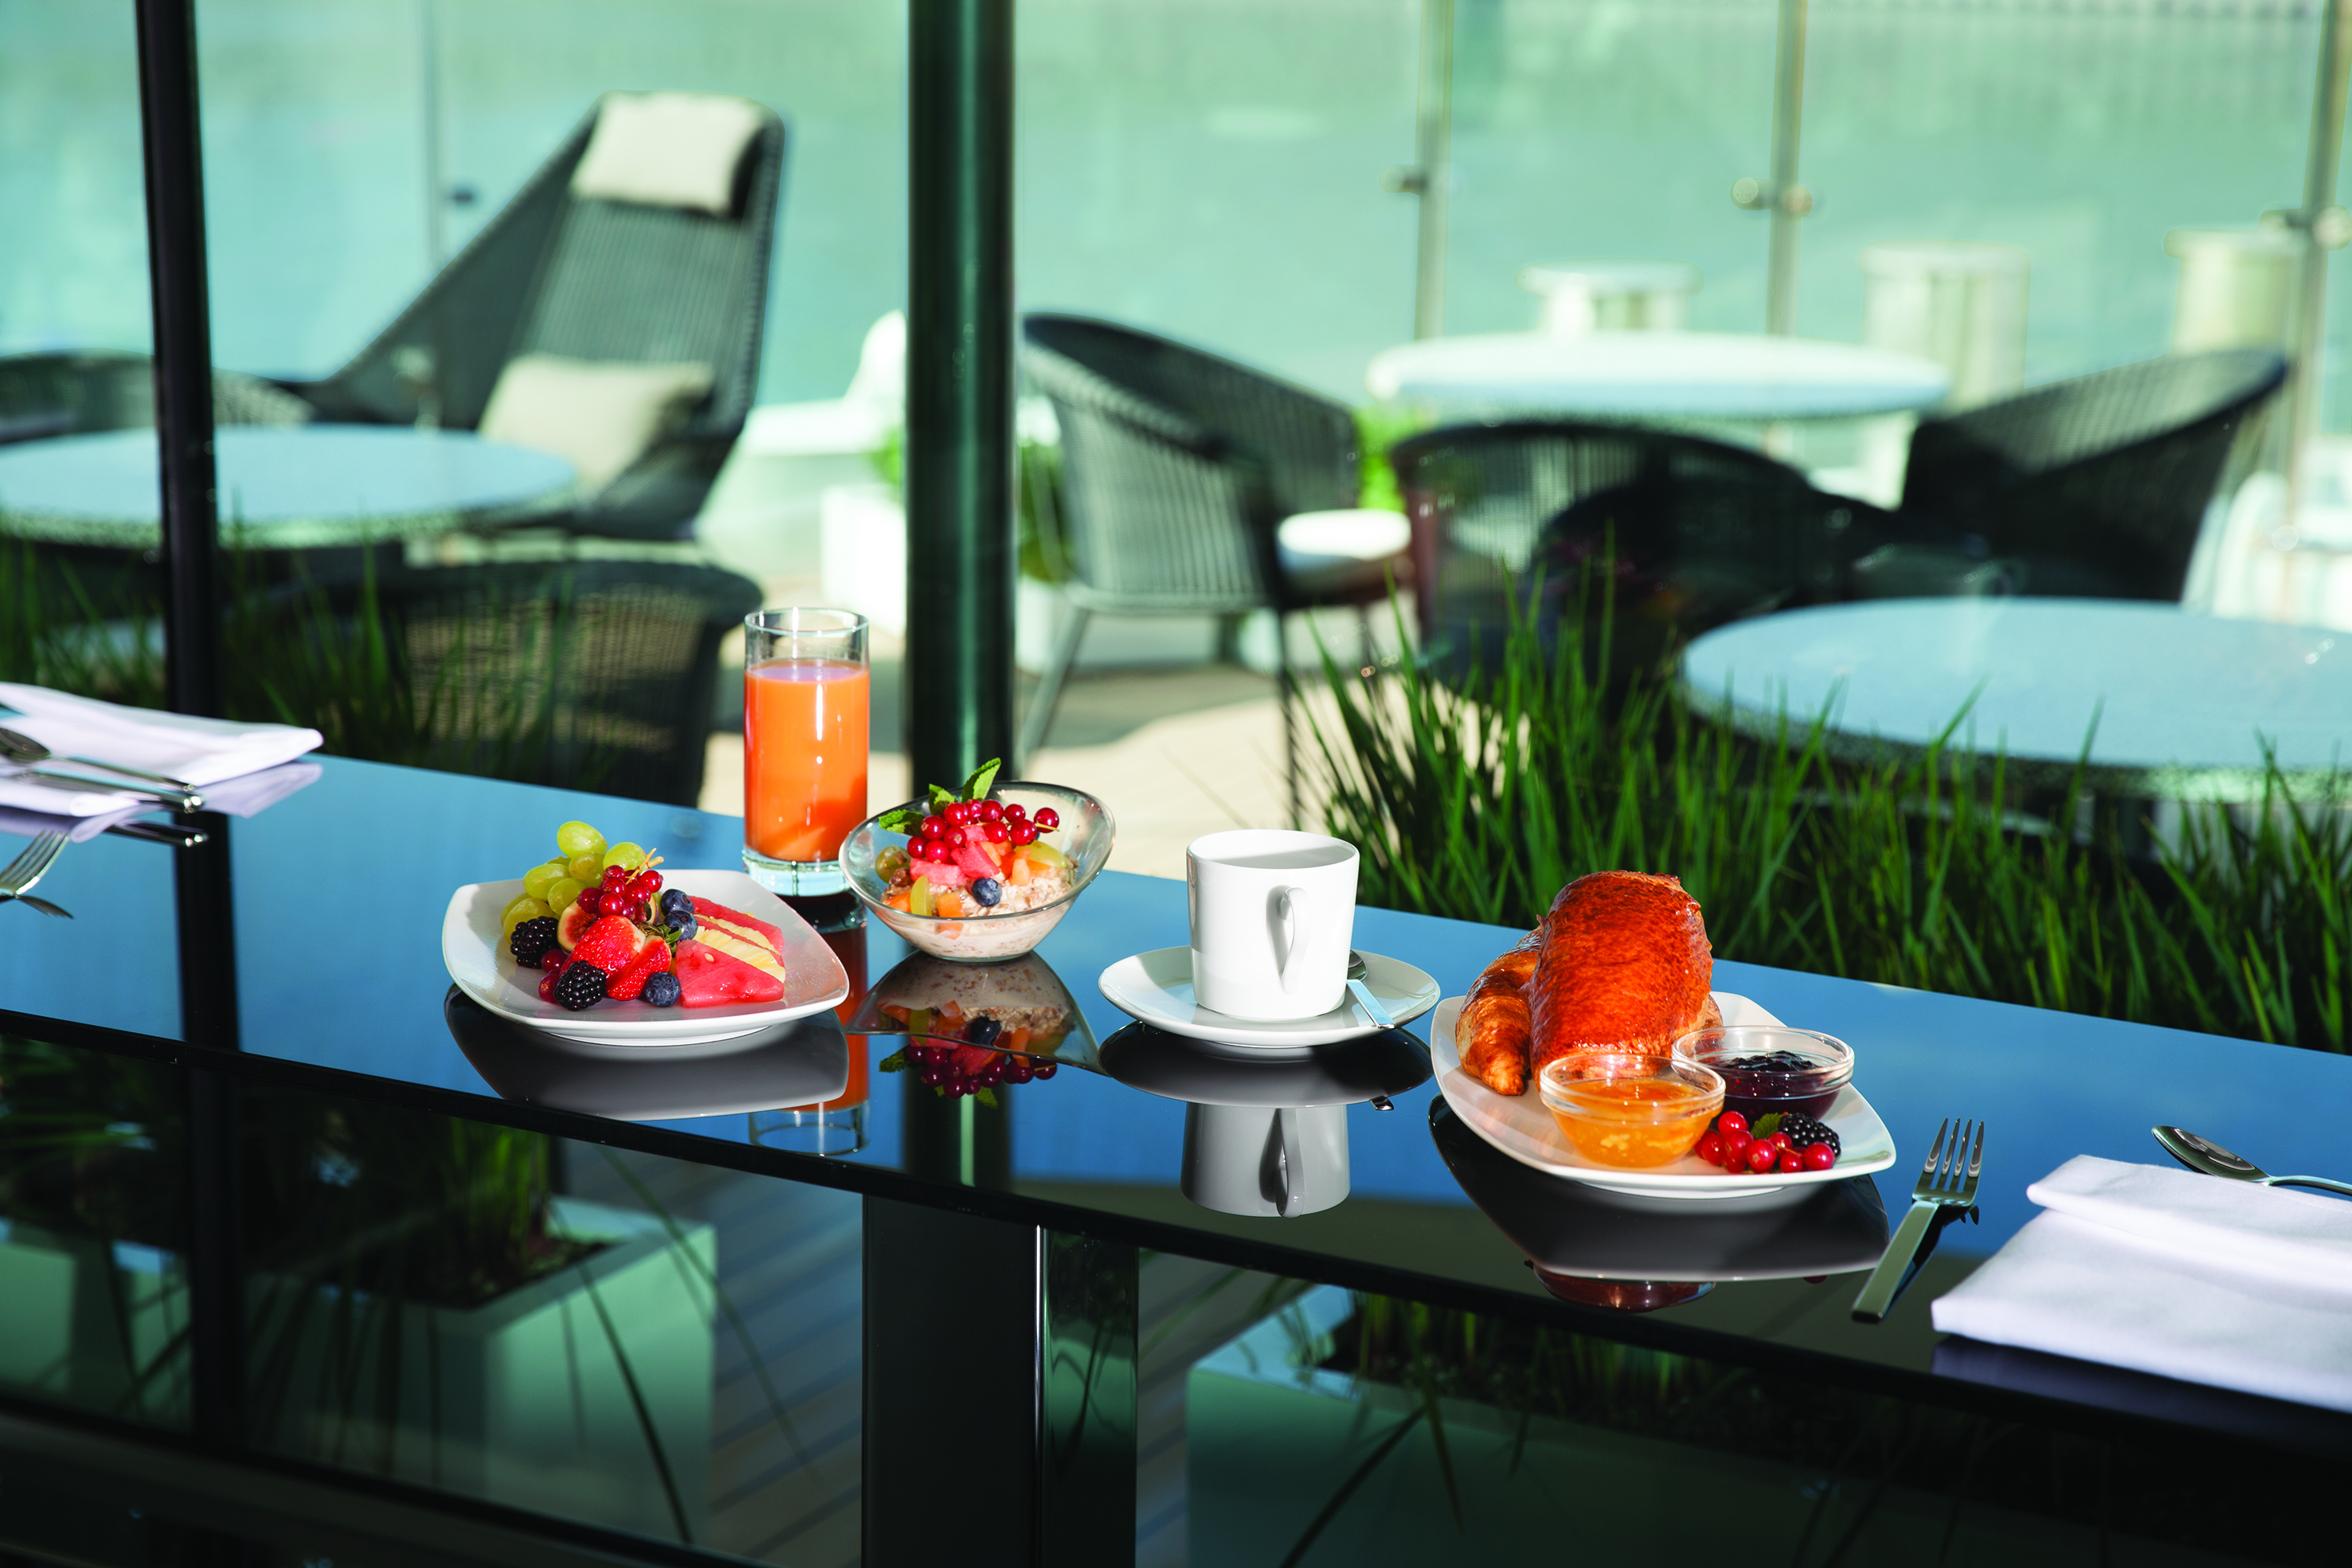 An introduction to emerald waterways jaw dropping sights for The terrace brunch